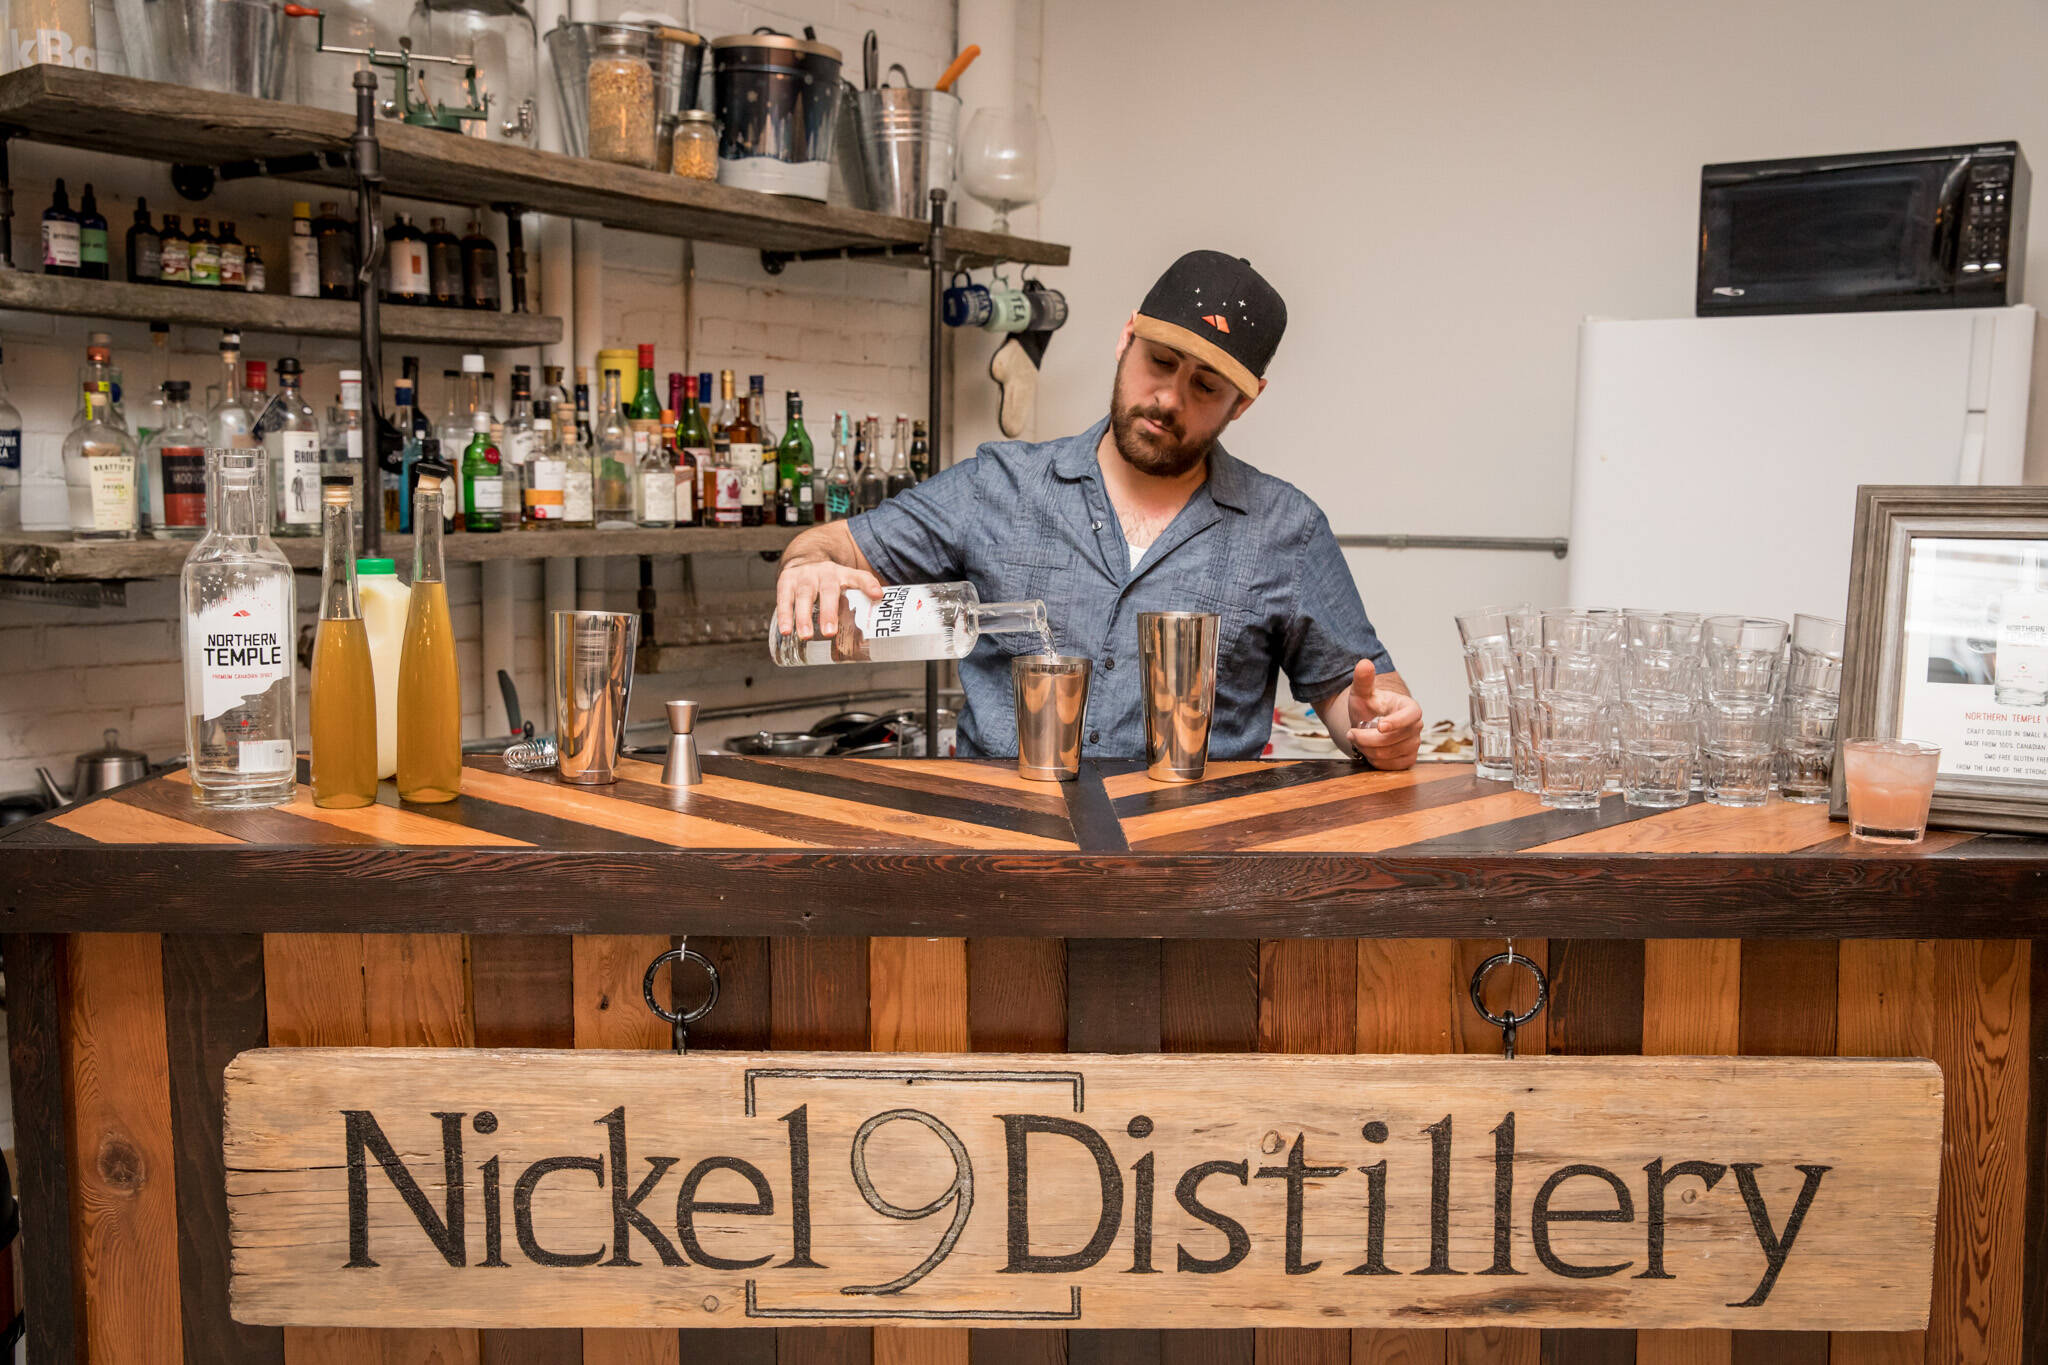 Nickel 9 Distillery